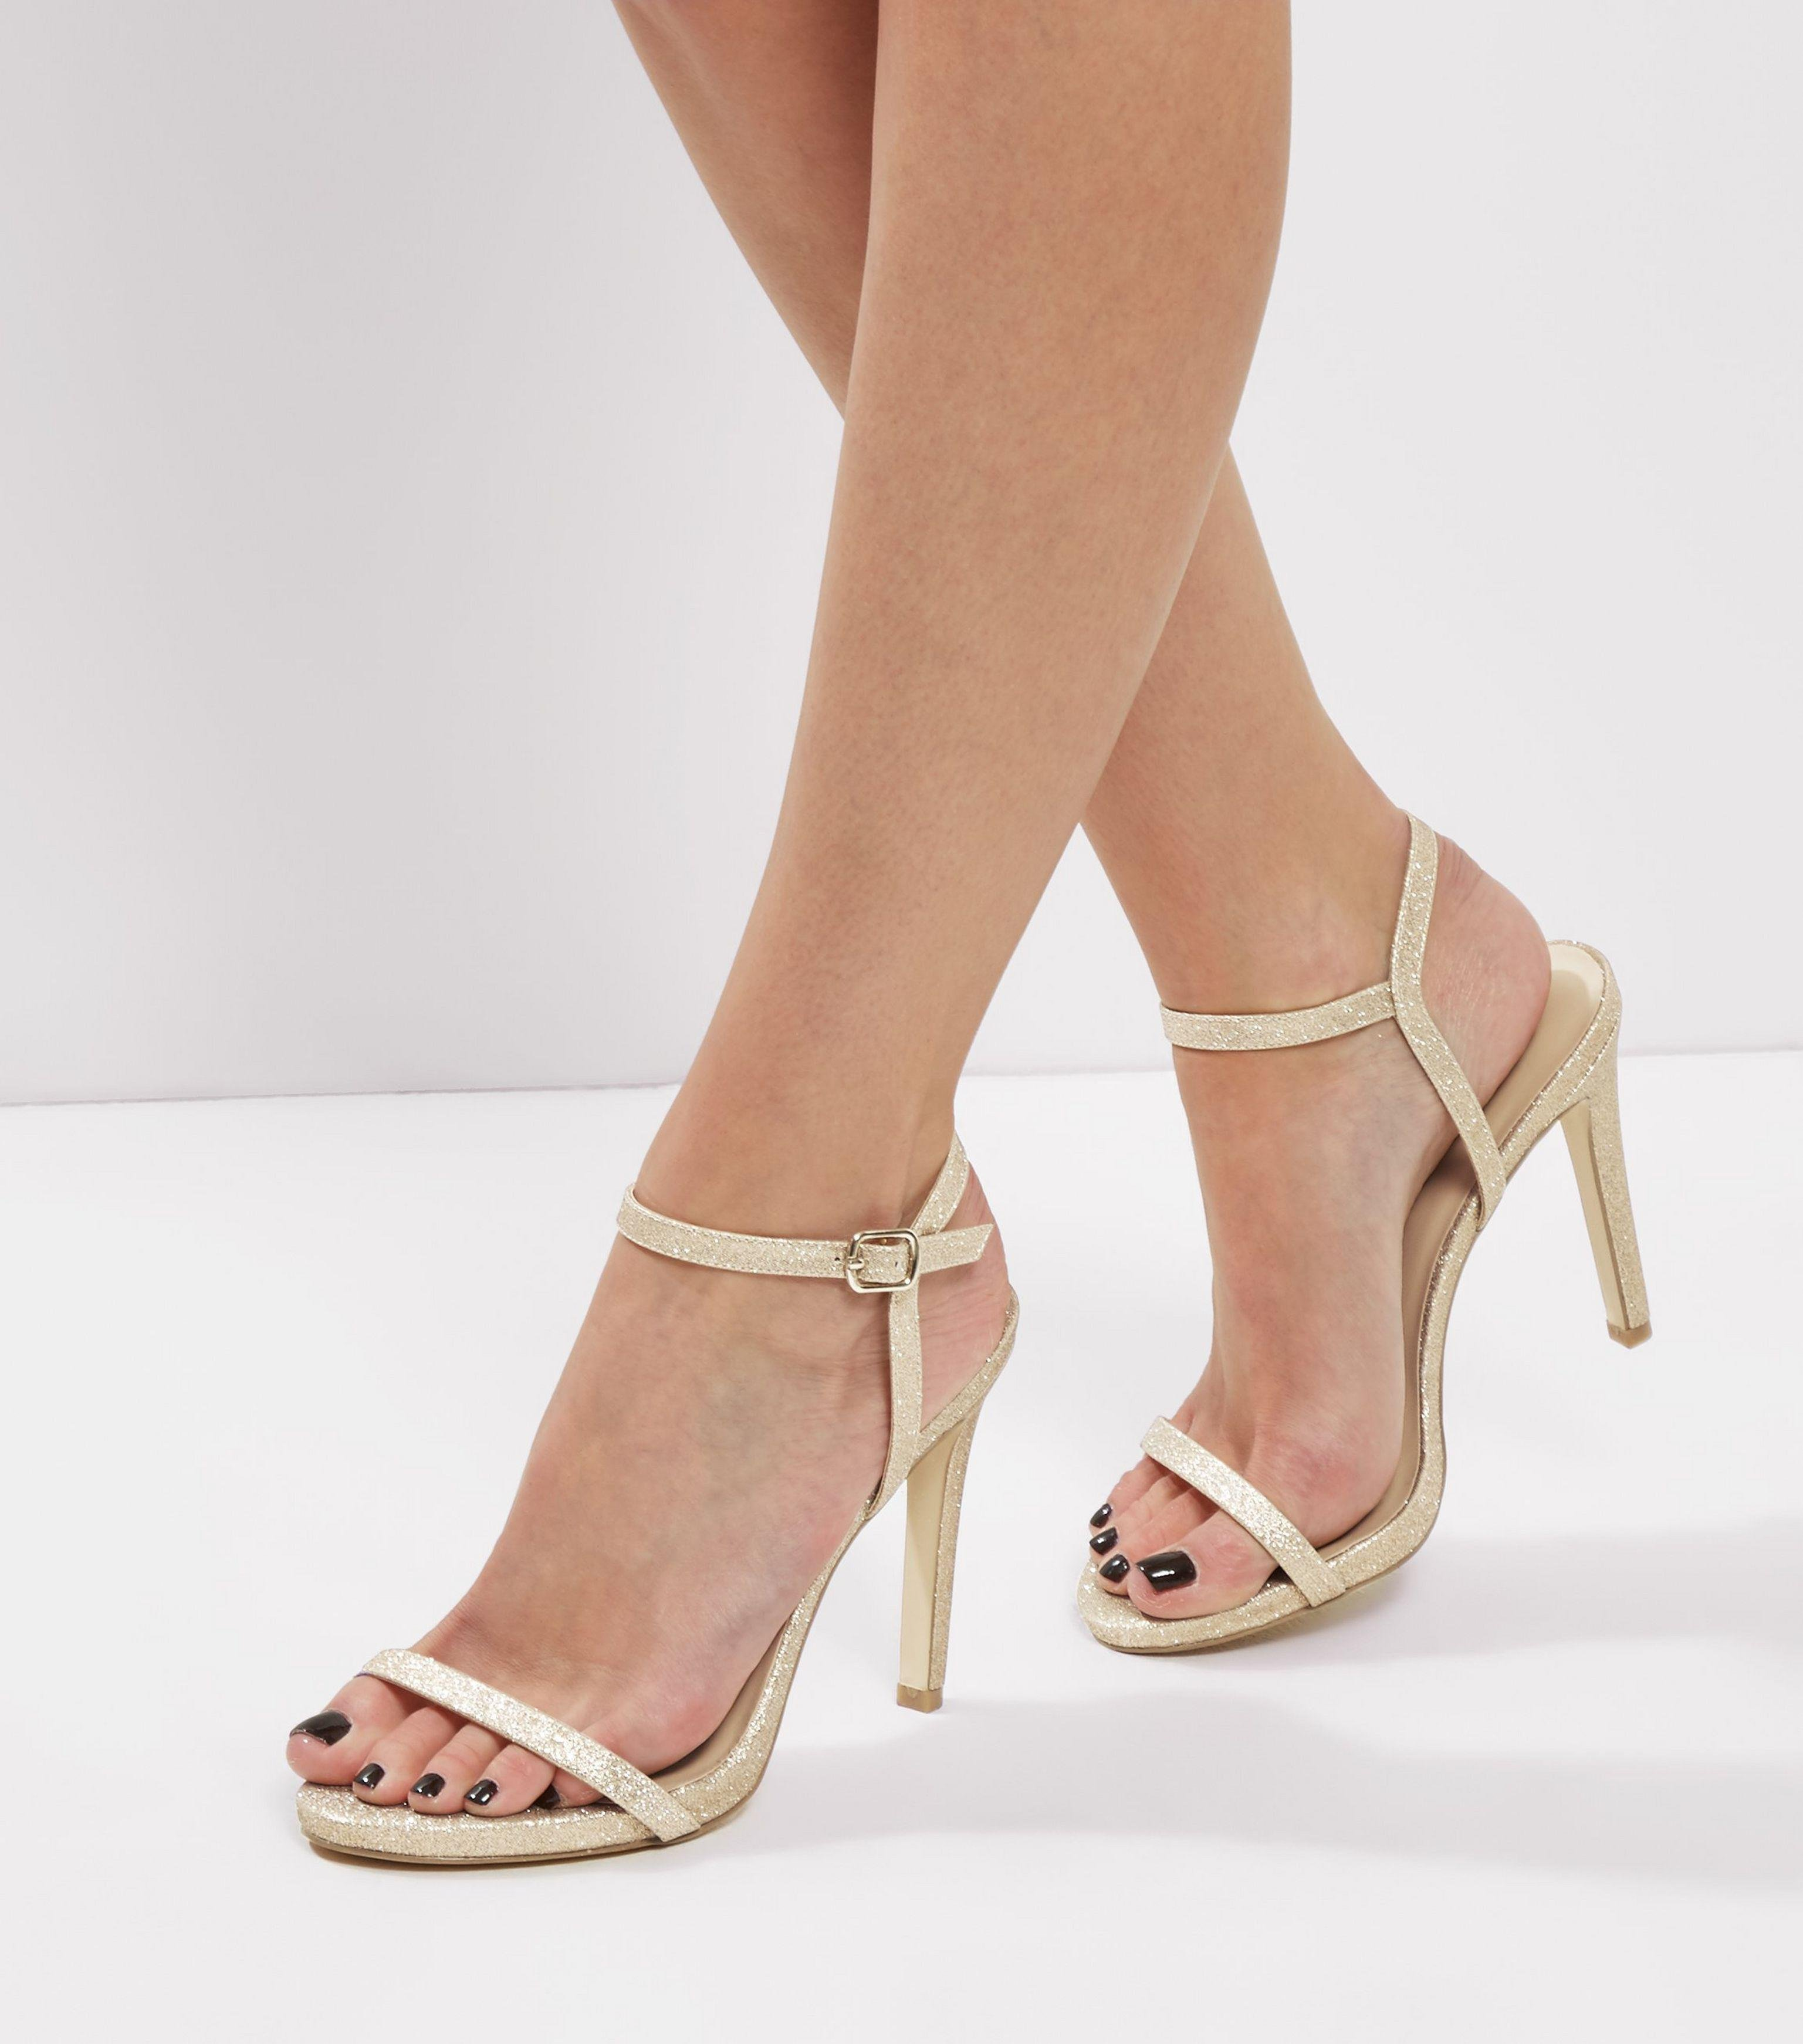 596e93ffcb New Look Gold Glitter Ankle Strap Heeled Sandals in Metallic - Lyst